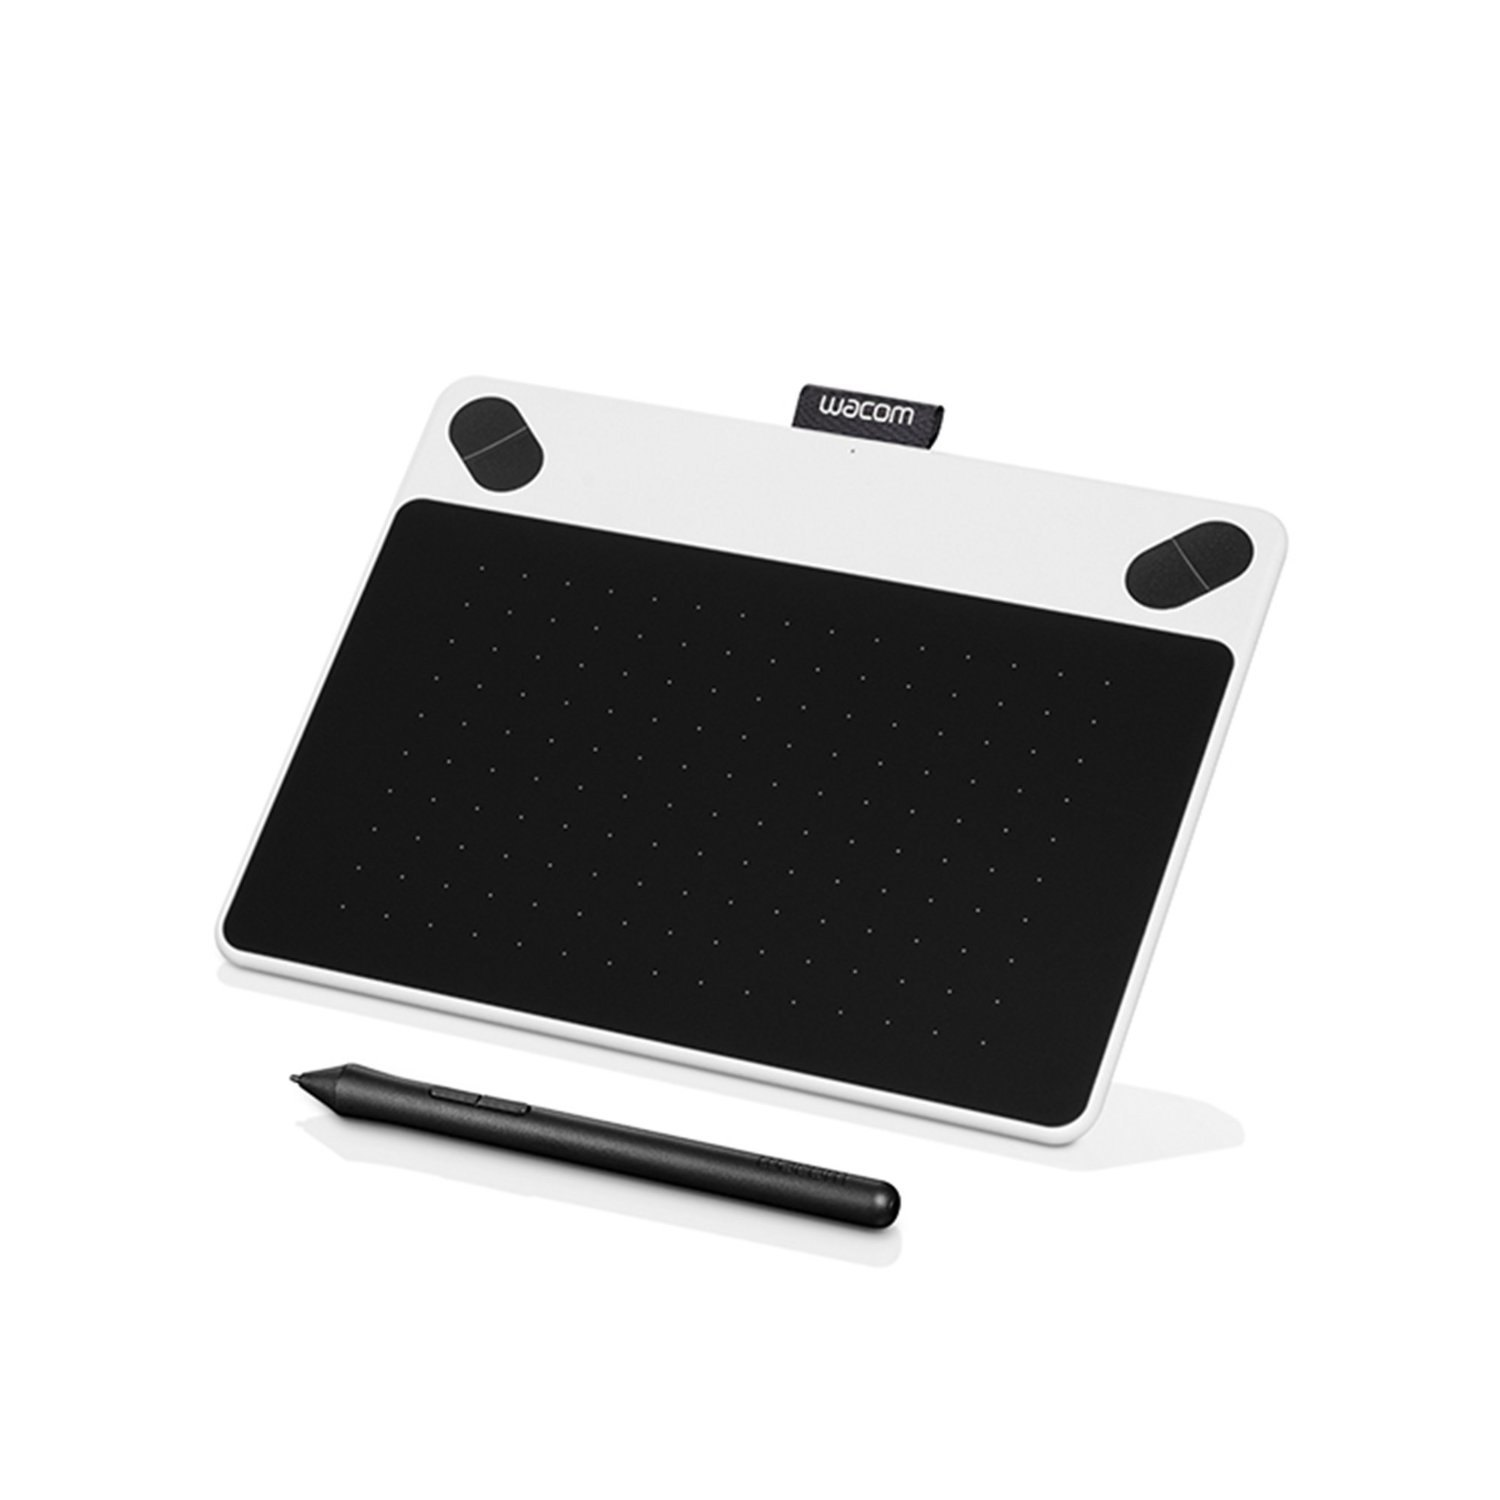 Tableta Wacom Intuos Only Pen Oak Small Pen 15.2cm x9.5cm(CTL4100)